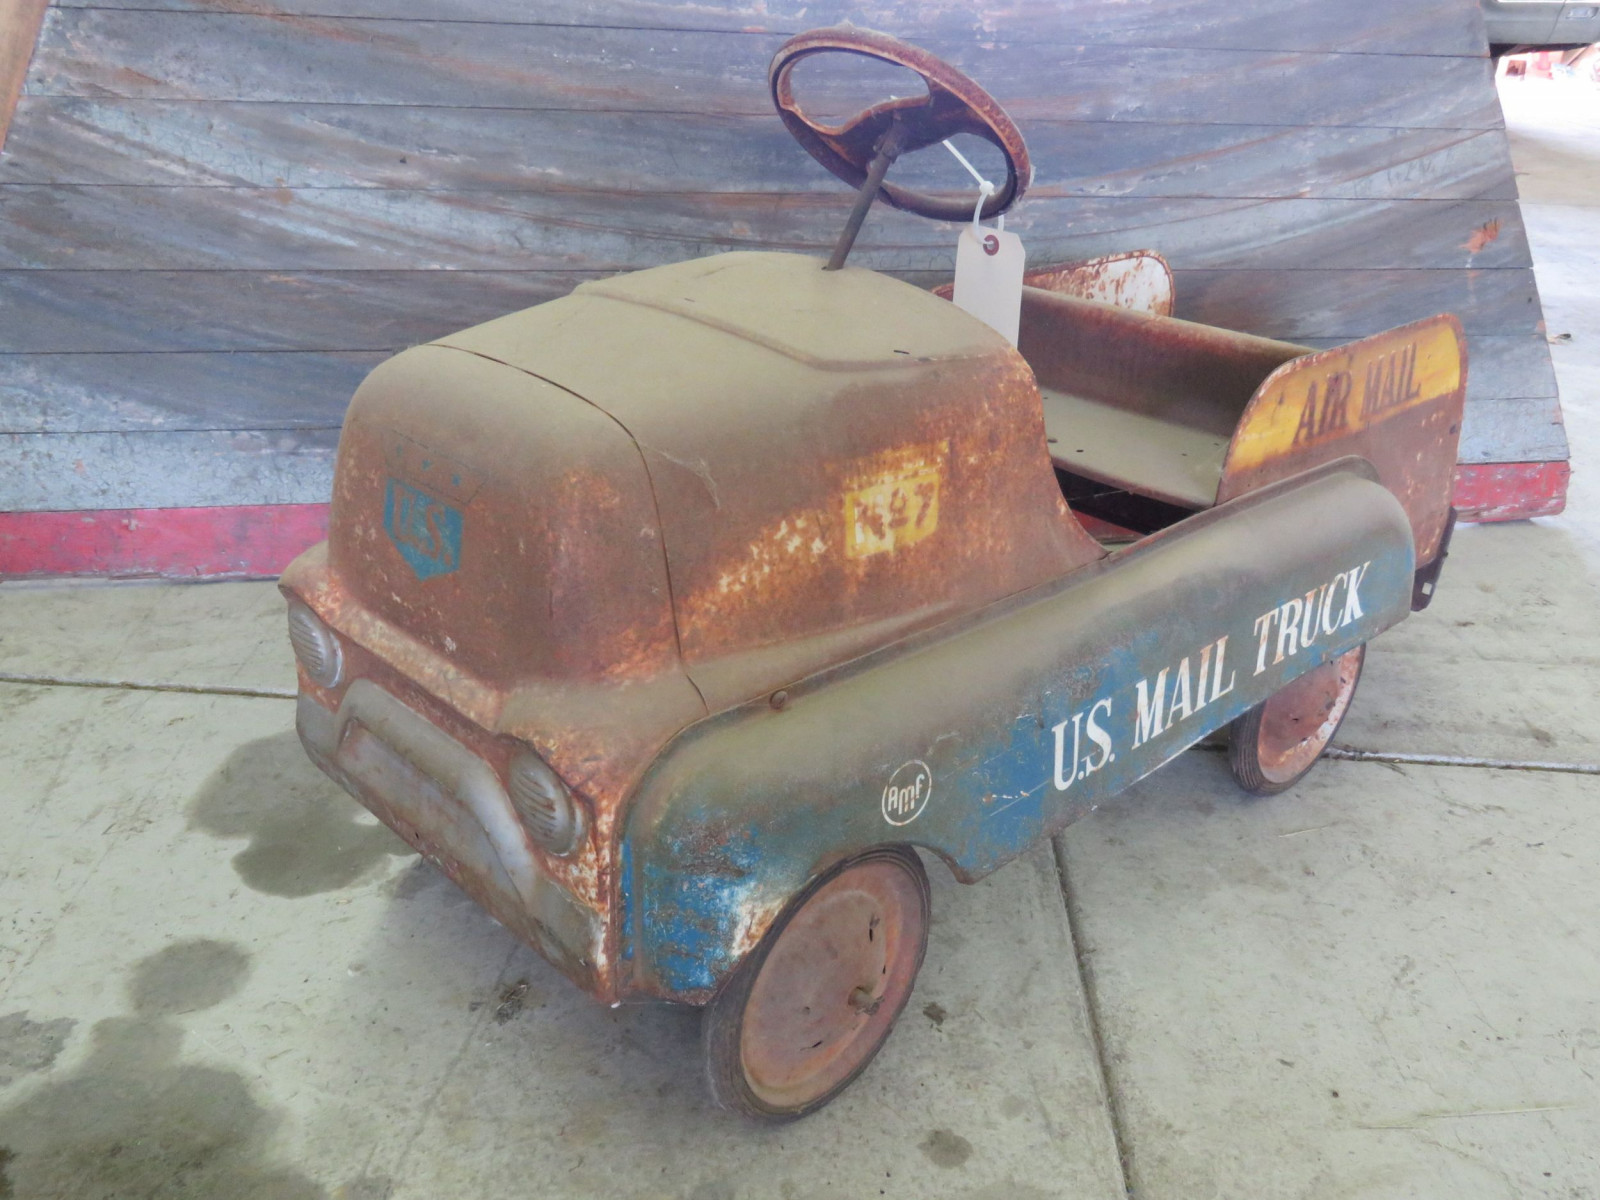 AMF Air Mail Truck Pedal Car for Restore - Image 1